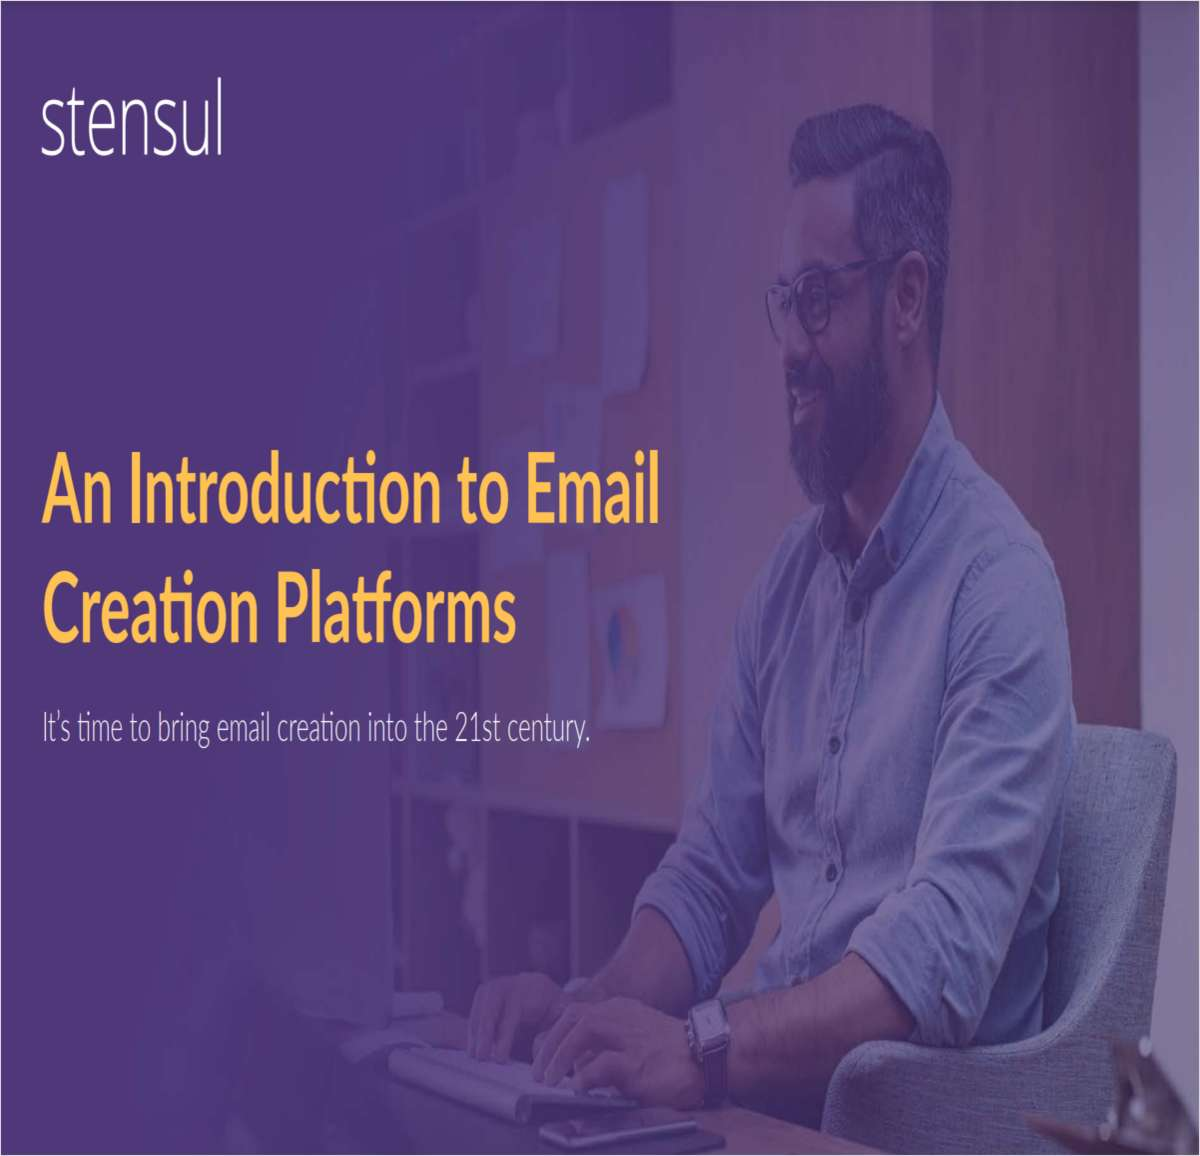 An Introduction to Email Creation Platforms